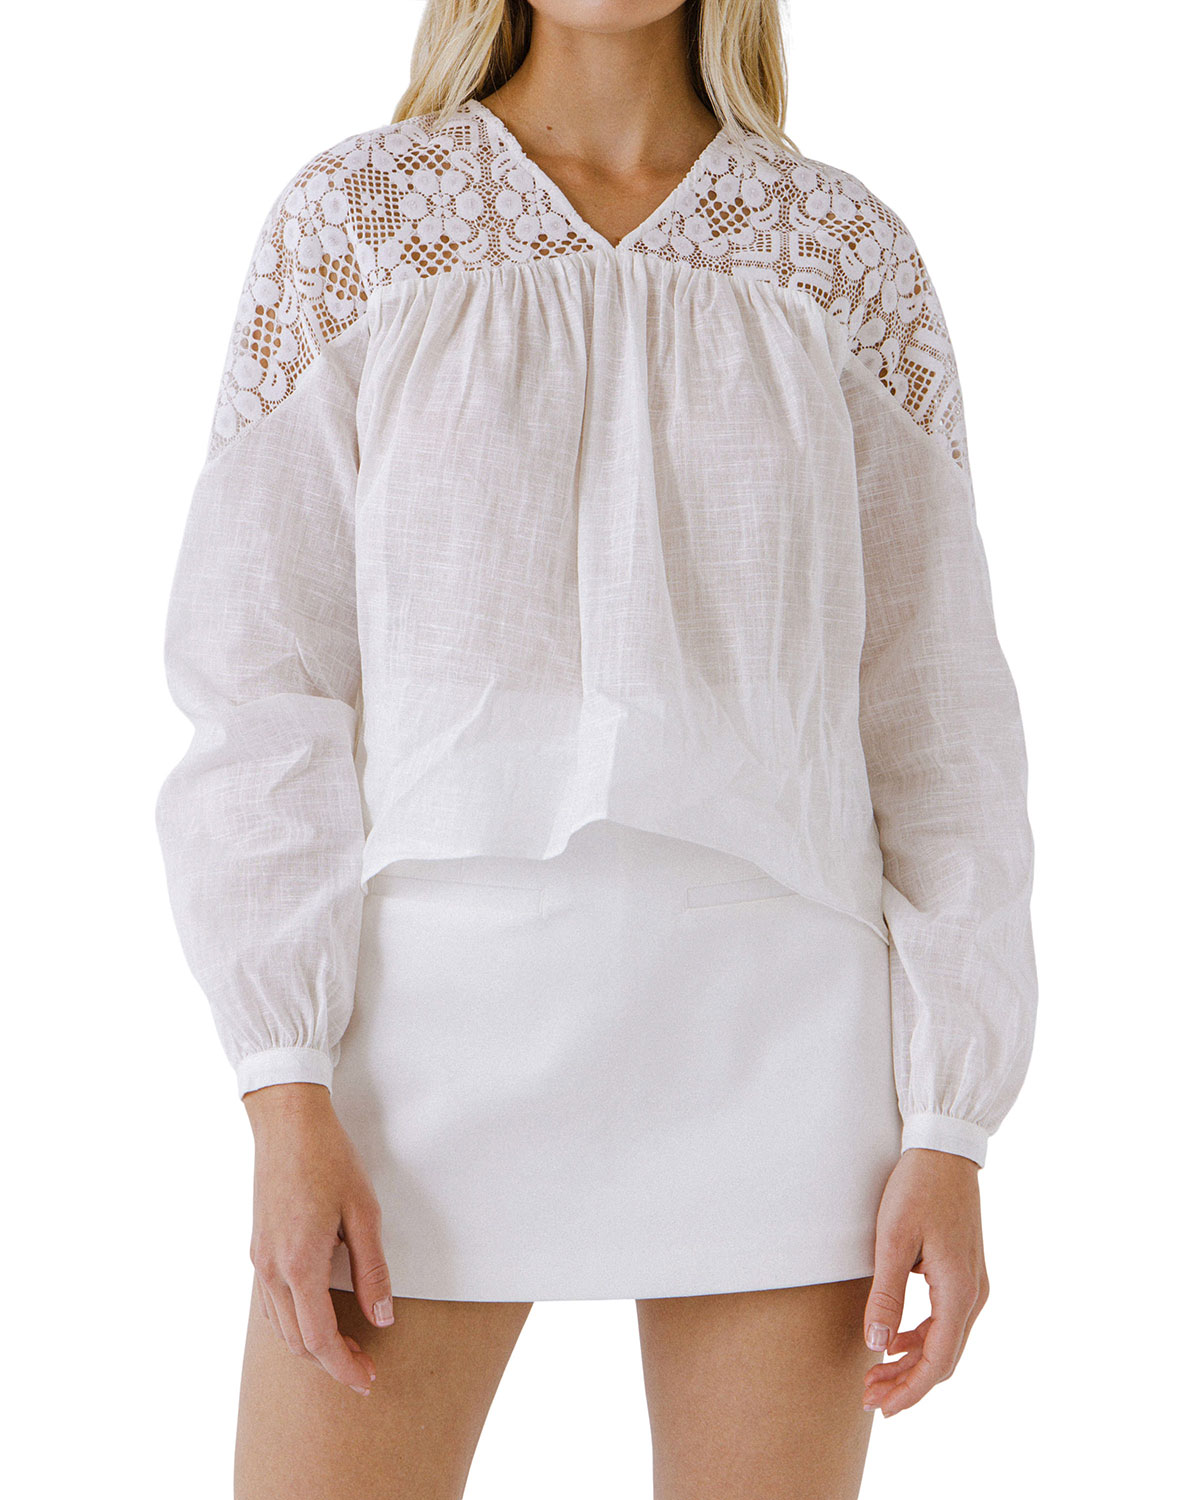 Long-Sleeve Blouse w/ Floral Lace